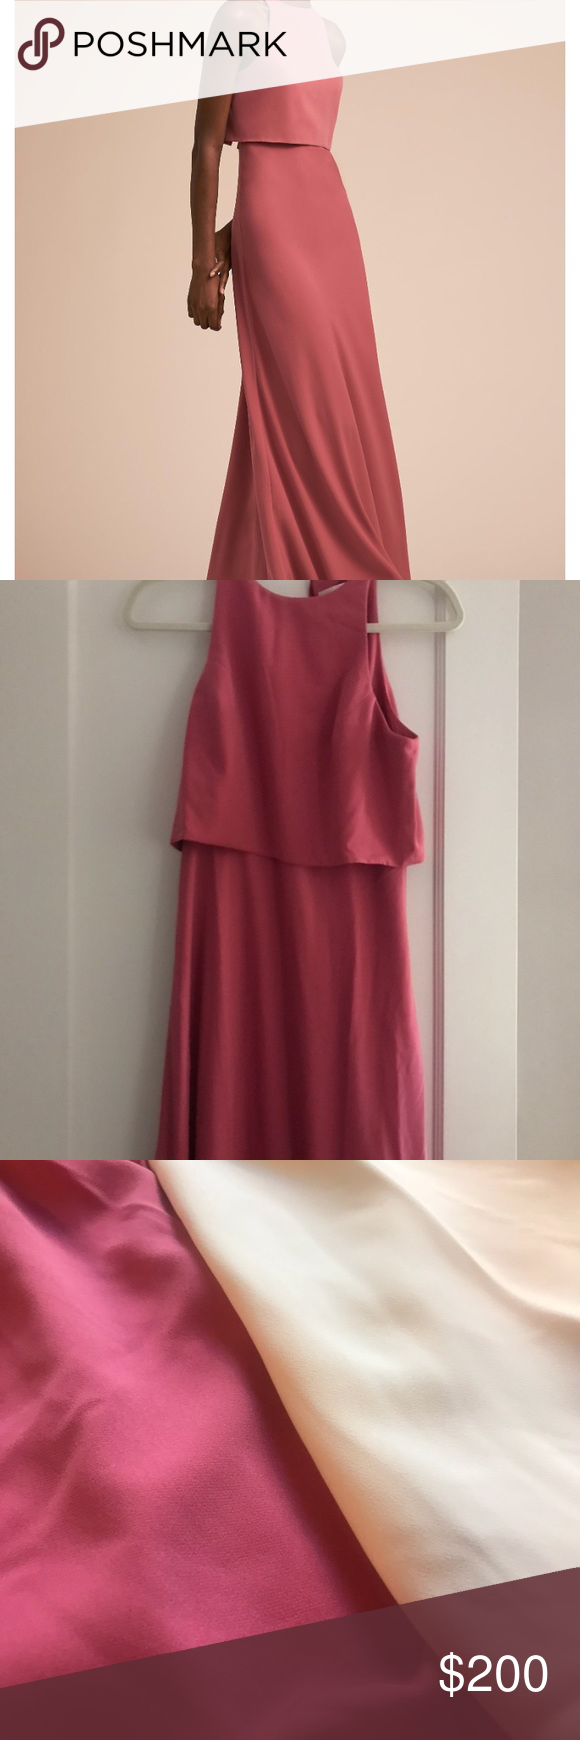 e85090de12d BHLDN Jill Stuart Iva Crepe Maxi in Pink Ribbon Worn once BHLDN Jill Stuart  Iva Crepe Maxi Pink Ribbon Long Dress. Three inches removed from the bottom  ...